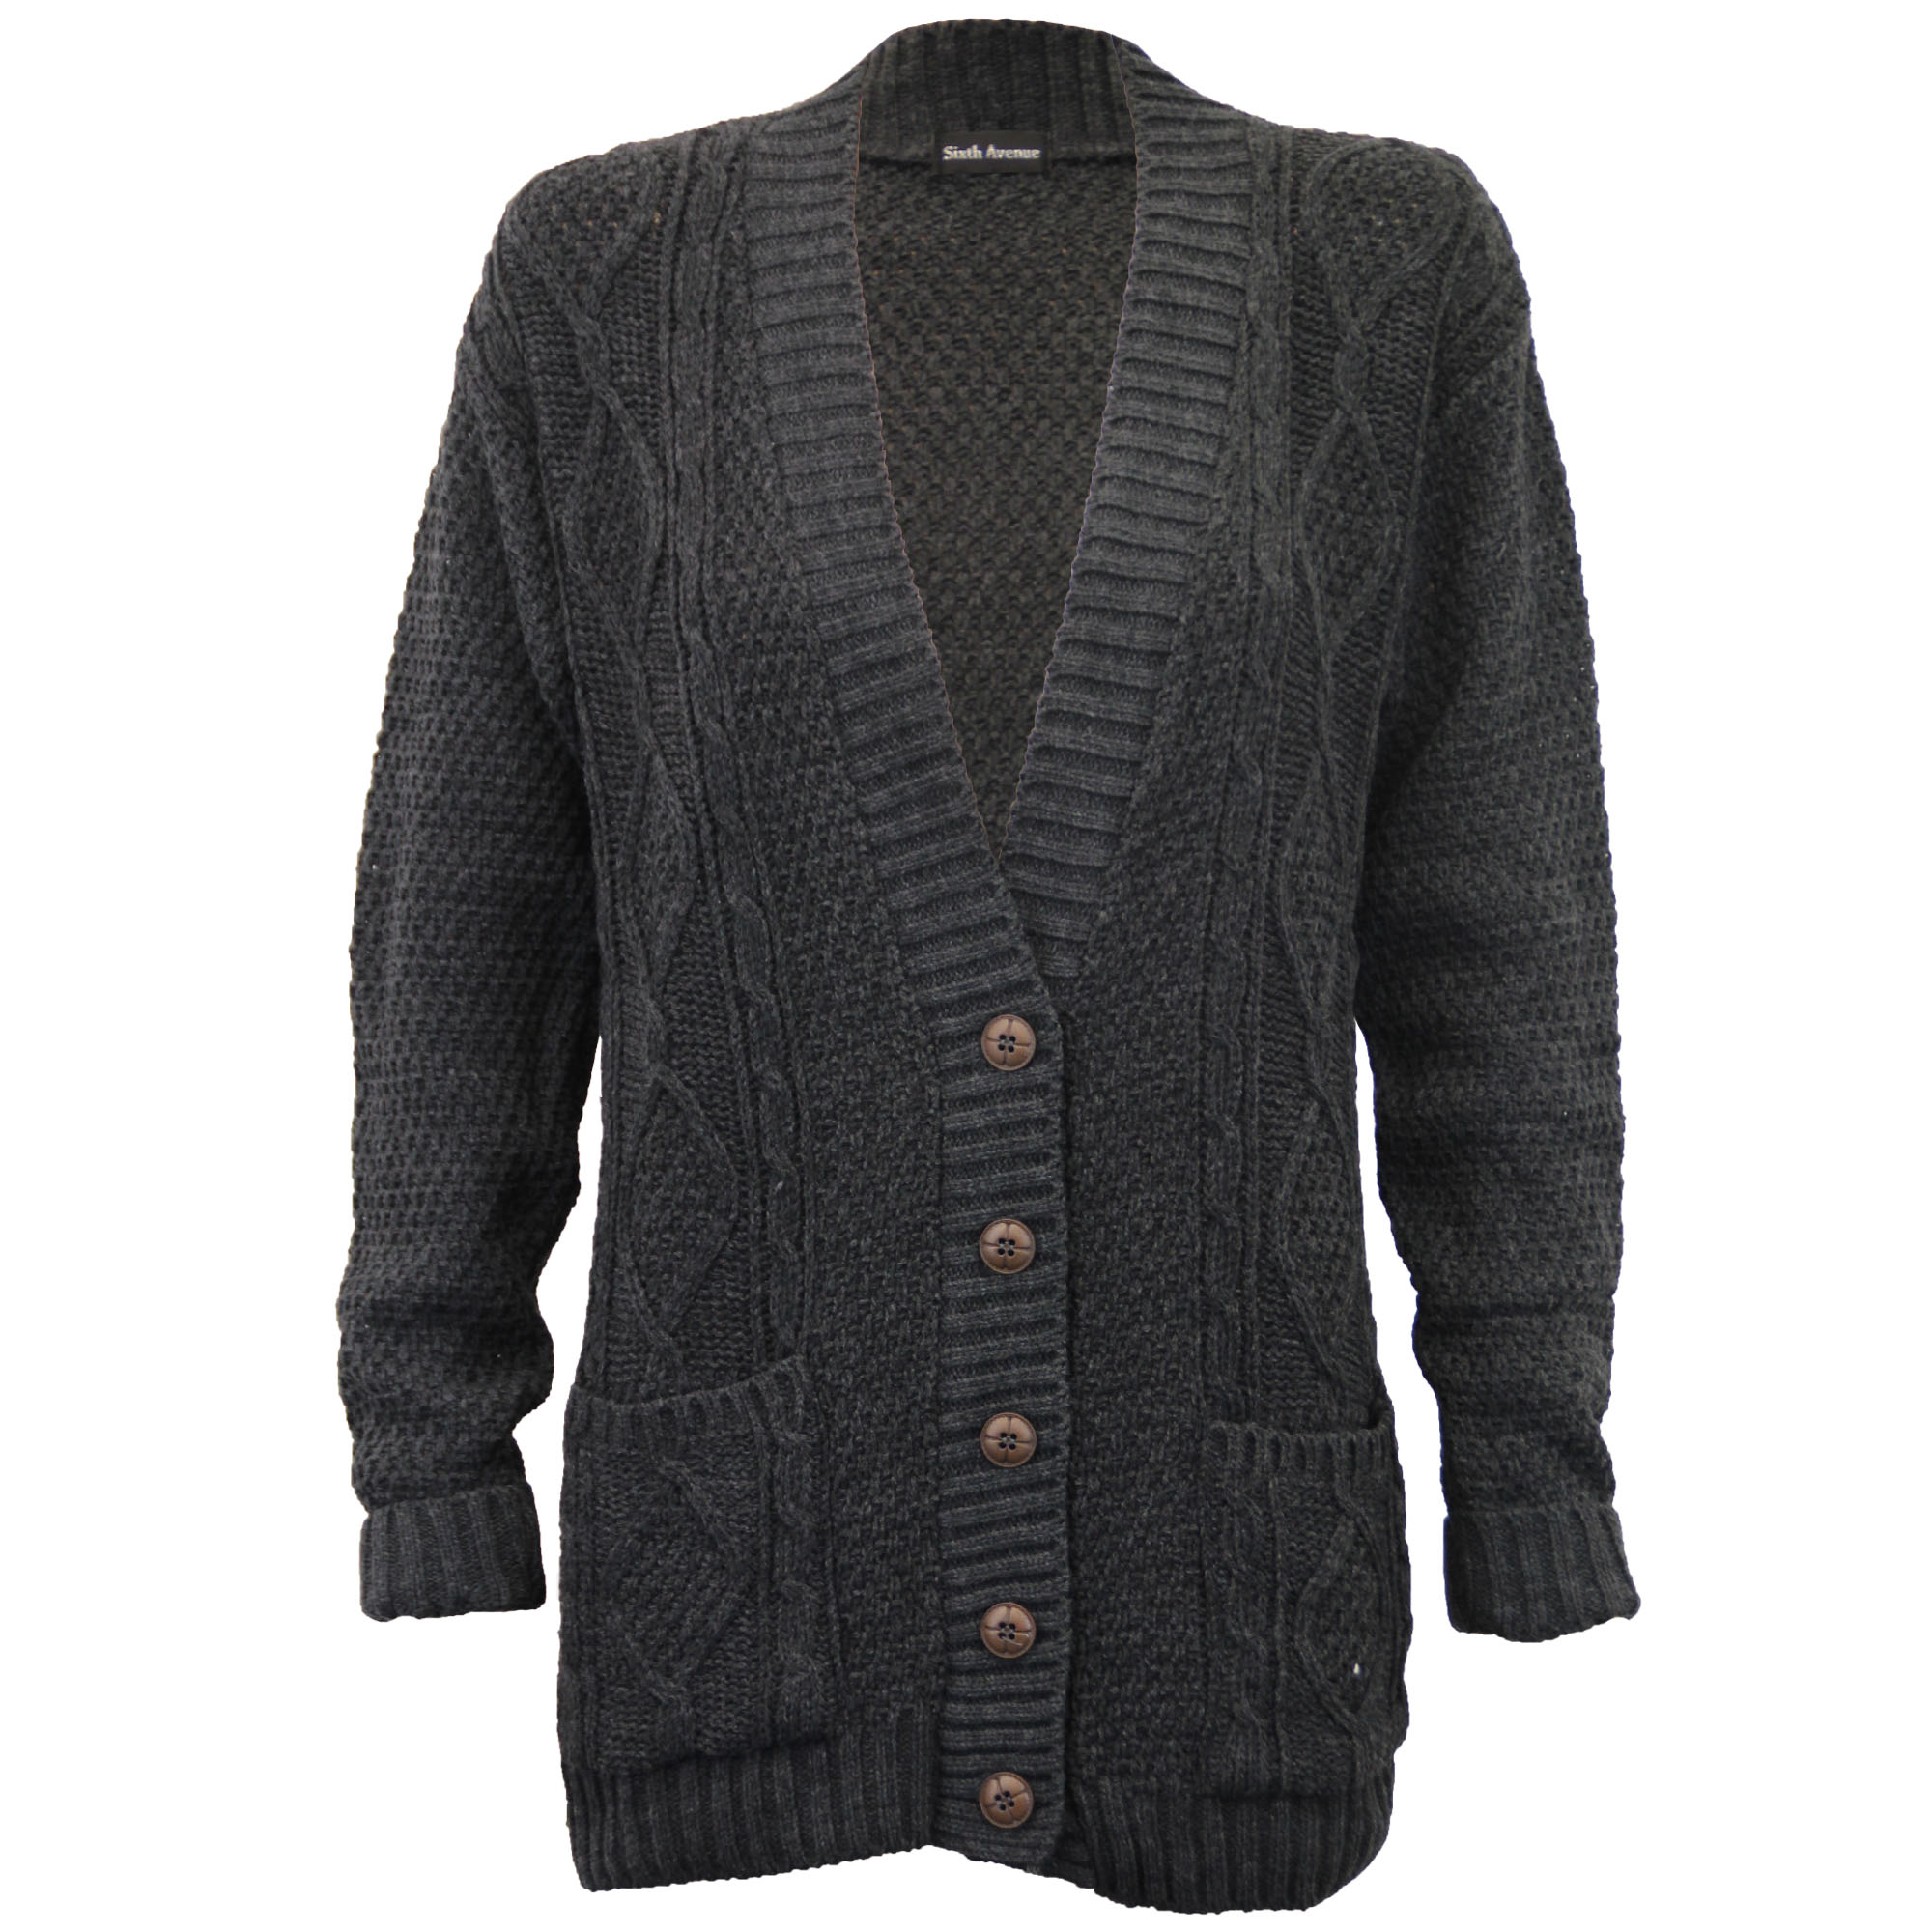 Ladies Cardigans Womens Knitted Jumper Cable Jacquard Boyfriend ... 9adaa555d